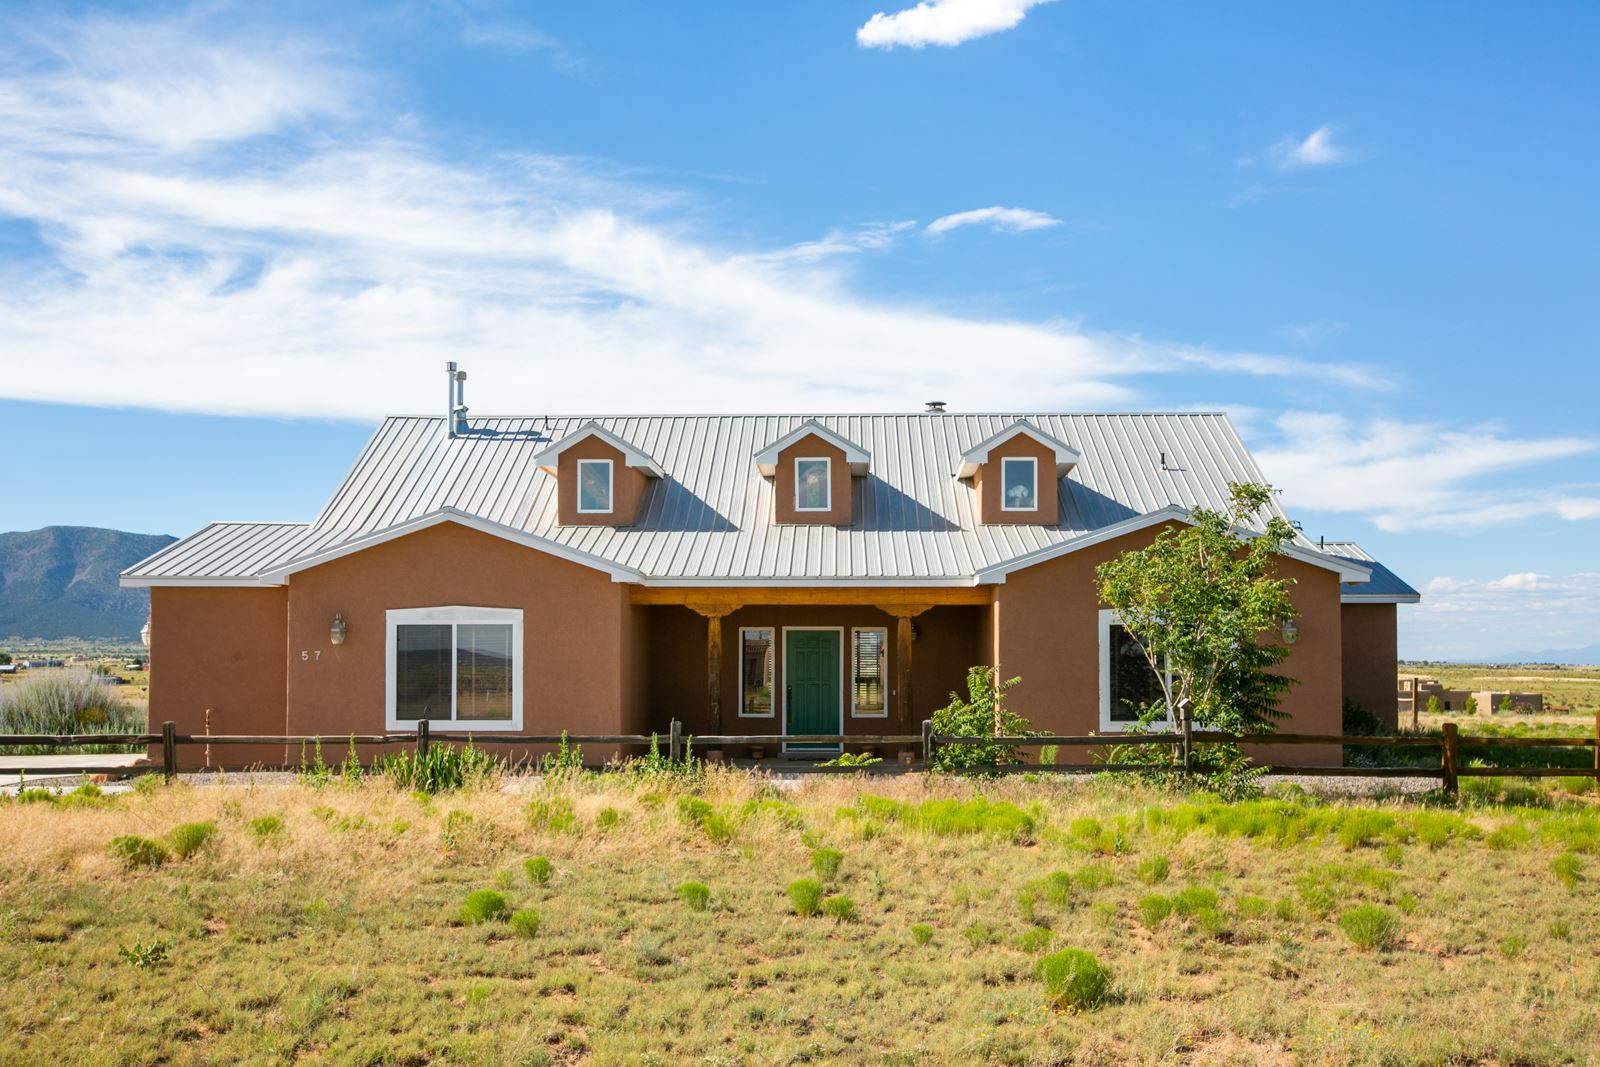 Welcome to this Bright, Beautiful, Single-Story Home in Edgewood, NM! Nestled on 2 Full Lush Acres, 57 High Meadow Loop offers Peace, Serenity, and Scenic Beauty while remaining Close to Everything that New Mexico has to offer! *Stunning Mountain Views for Miles!* This Home features an Open Floor Plan and Large Kitchen with Island and Plenty of Storage. Let a Custom, Stacked-Stone Gas Fireplace be your Family Room's Focal Point. Spacious Master Suite with Double Sinks, Jetted Tub, Separate Shower, and Walk-in Closet. Entertain Guests on your Covered Patio with Breathtaking Views and Sunsets! Patio-Access from Kitchen and Master Suite! Pitched Metal Roof! Entranosa Community Water! Easy Access to Freeway! Close to the new Estancia Valley Classical Academy! Horses Welcome!